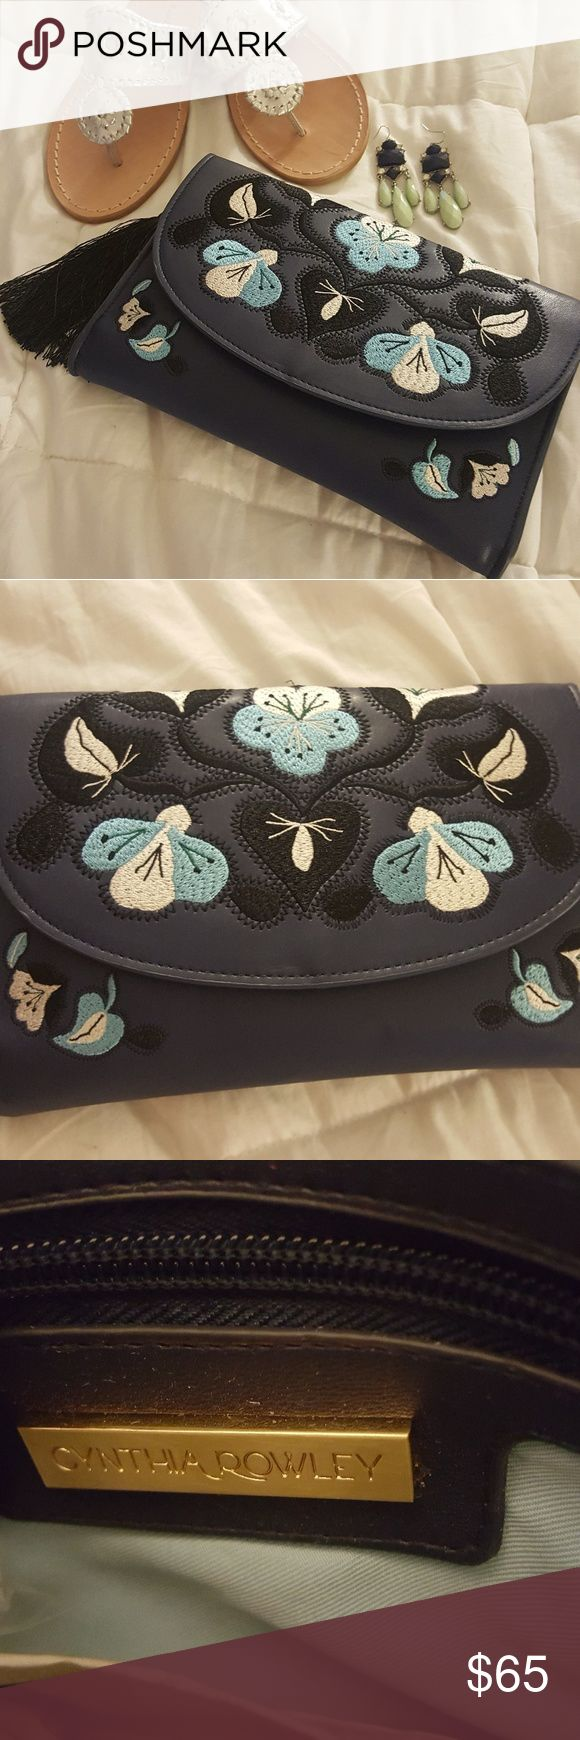 Cynthia Rowley Layla embroidered clutch Beautiful black, blue and white collaboration ensemble this clutch. Check last pic of tiny scratch on the back. Very small and most important, not in the front. Cynthia Rowley Bags Clutches & Wristlets